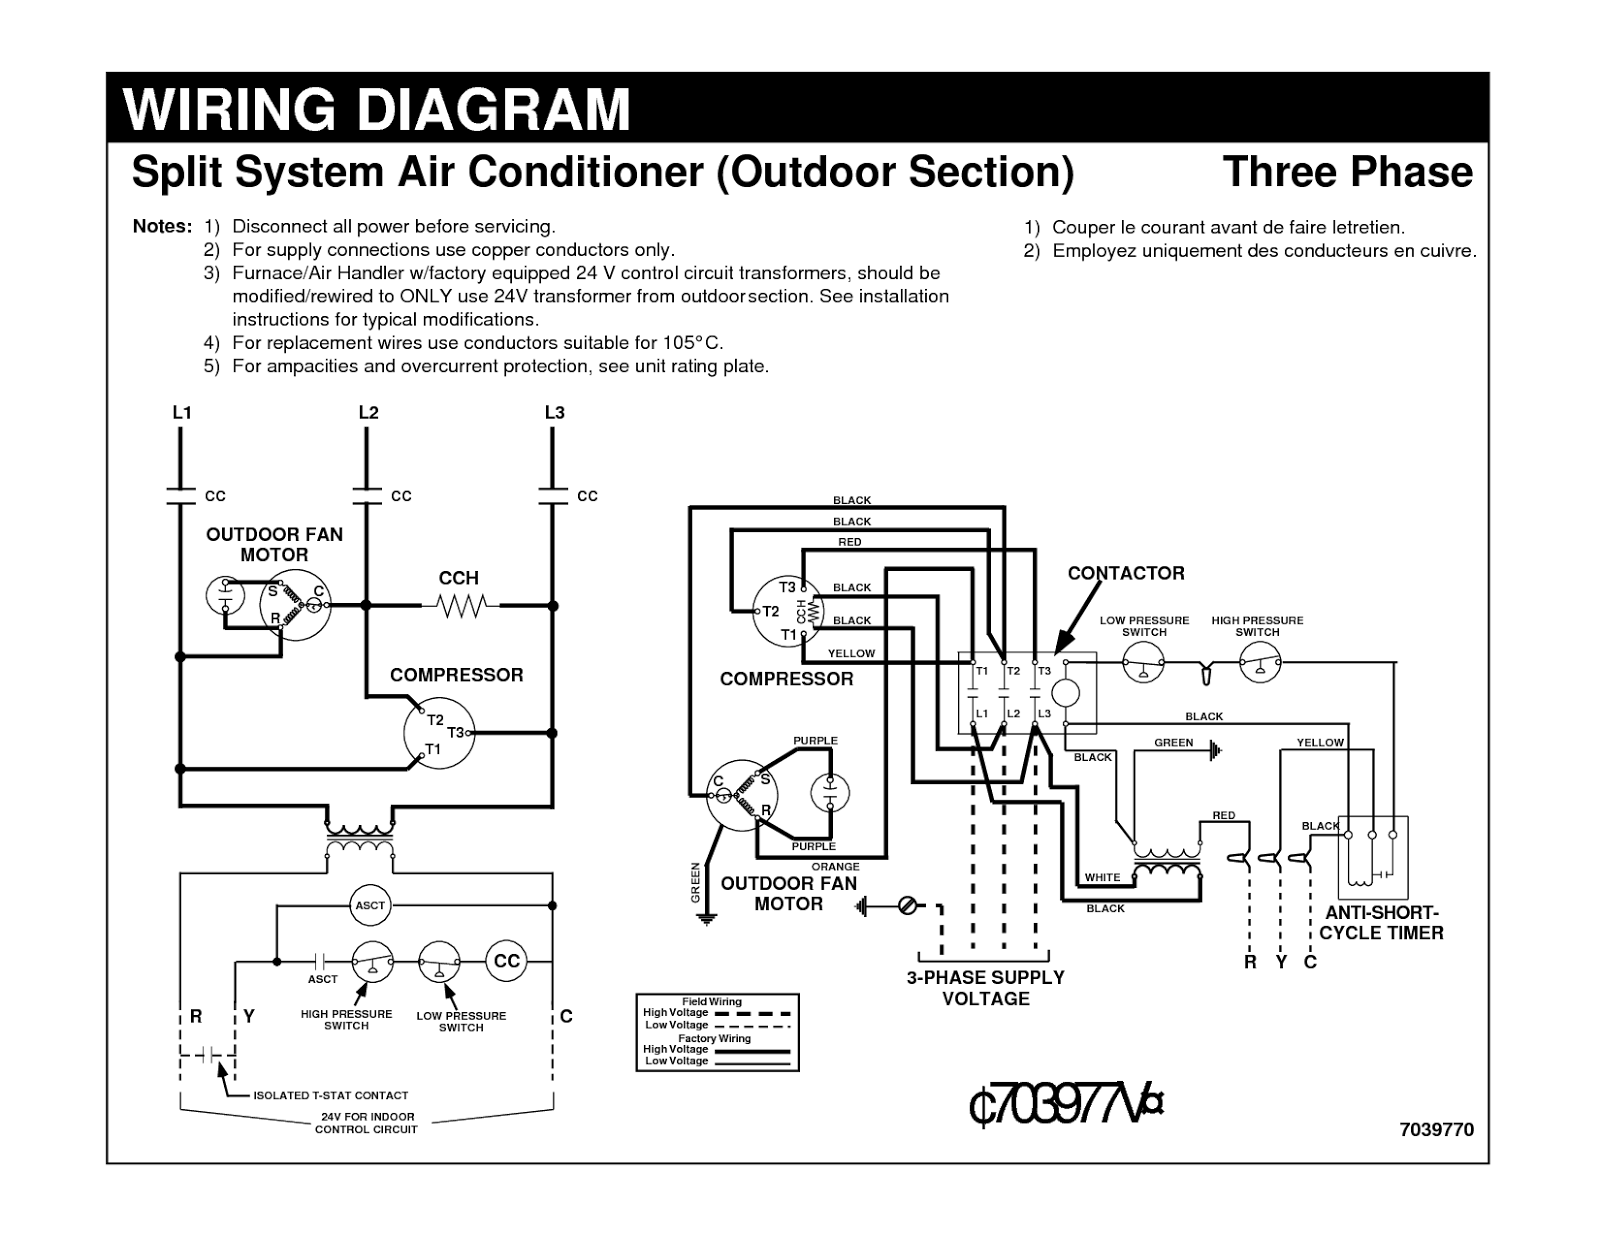 commercial air handler diagram with Split System Wiring Diagram Simple on 3421 in addition 349591989800563494 also Wiring Diagrams Air Conditioning Units furthermore 17669 also Hvac Indoor Unit Wiring Diagram.